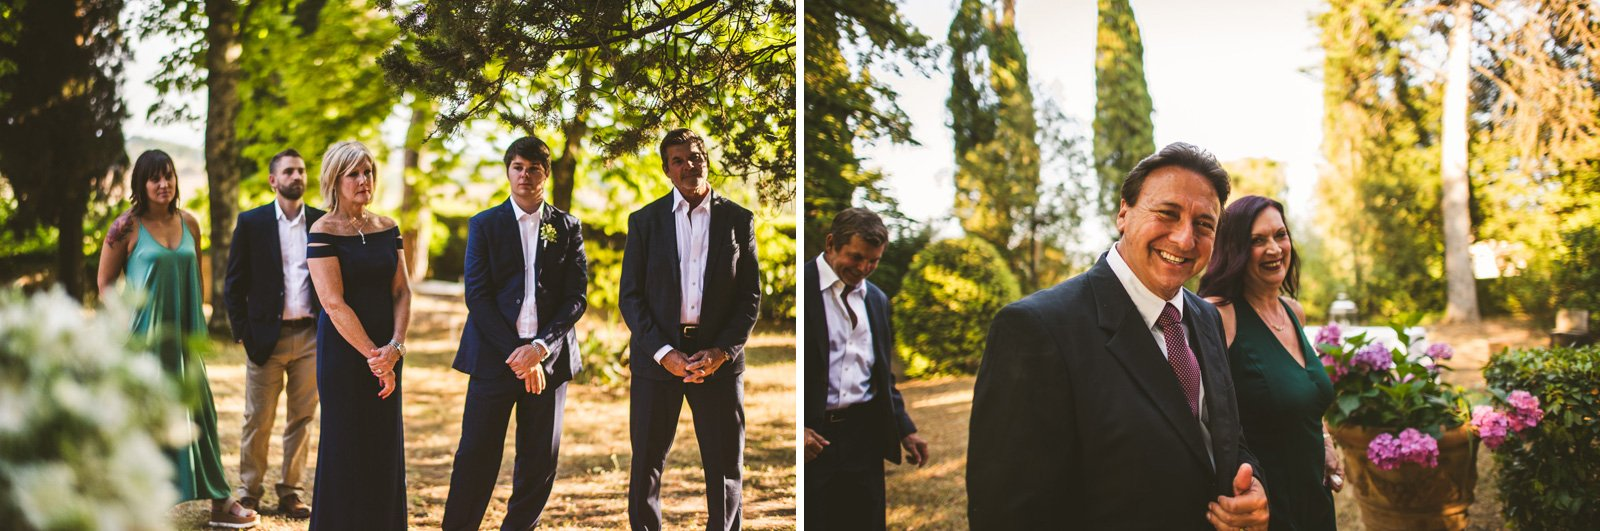 A+L Wedding at Montechiaro, Siena by Federico Pannacci 59